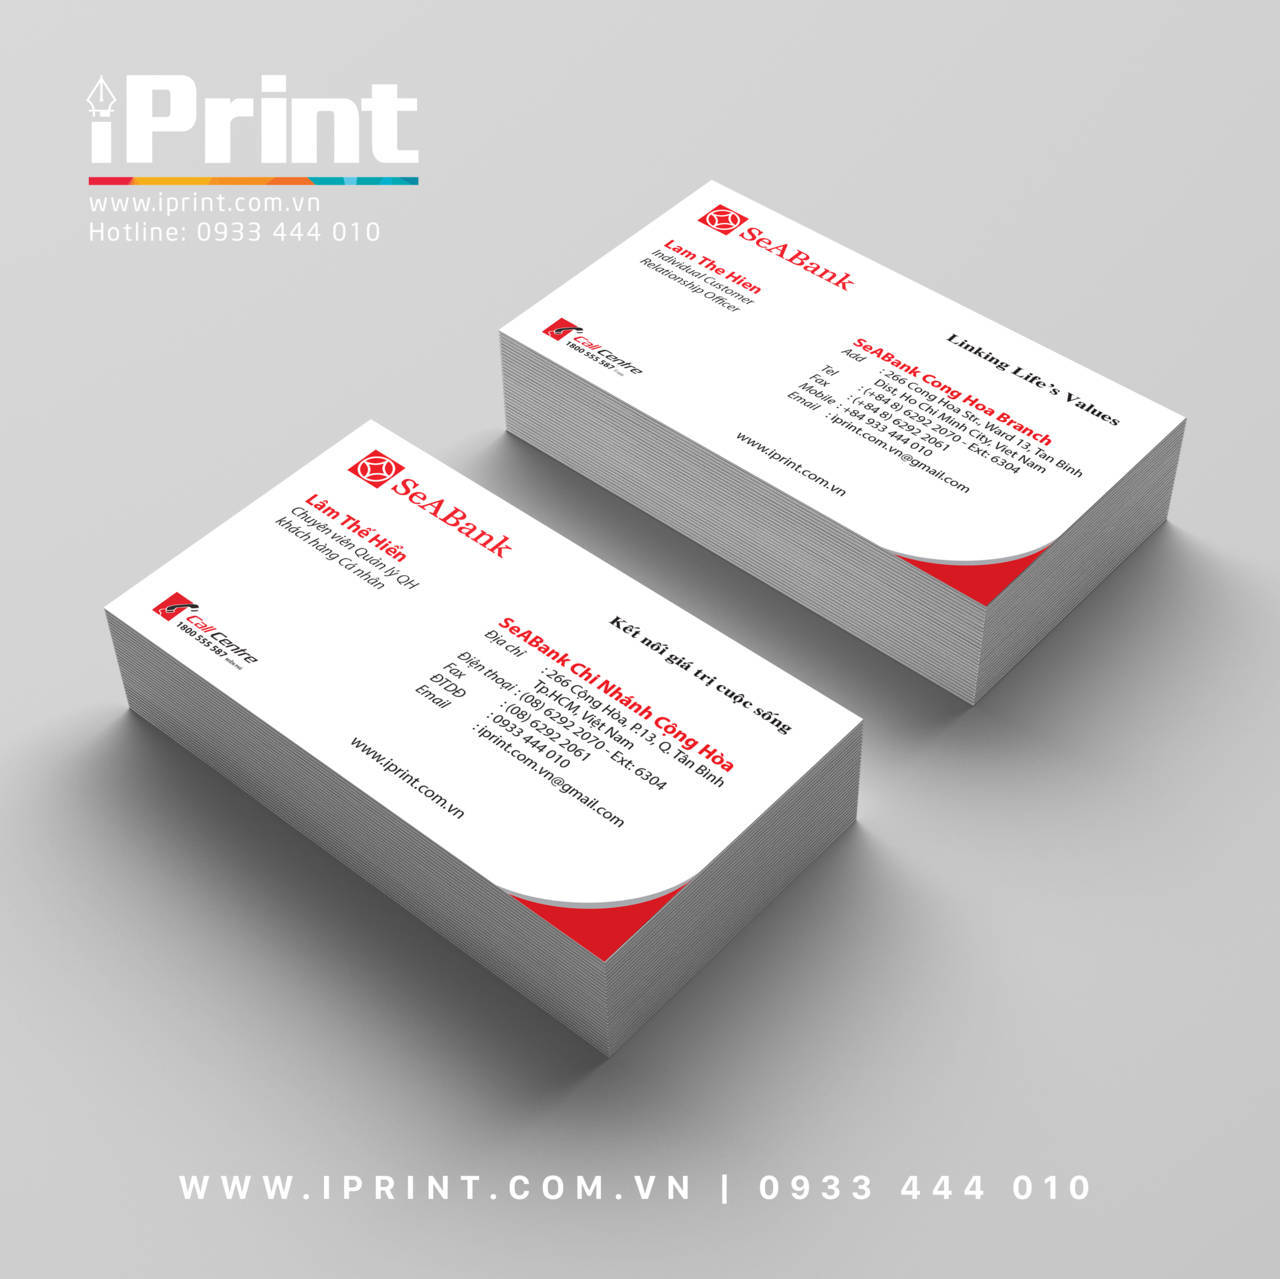 mau-name-card-ngan-hang-SeaABank www.iprint.com.vn